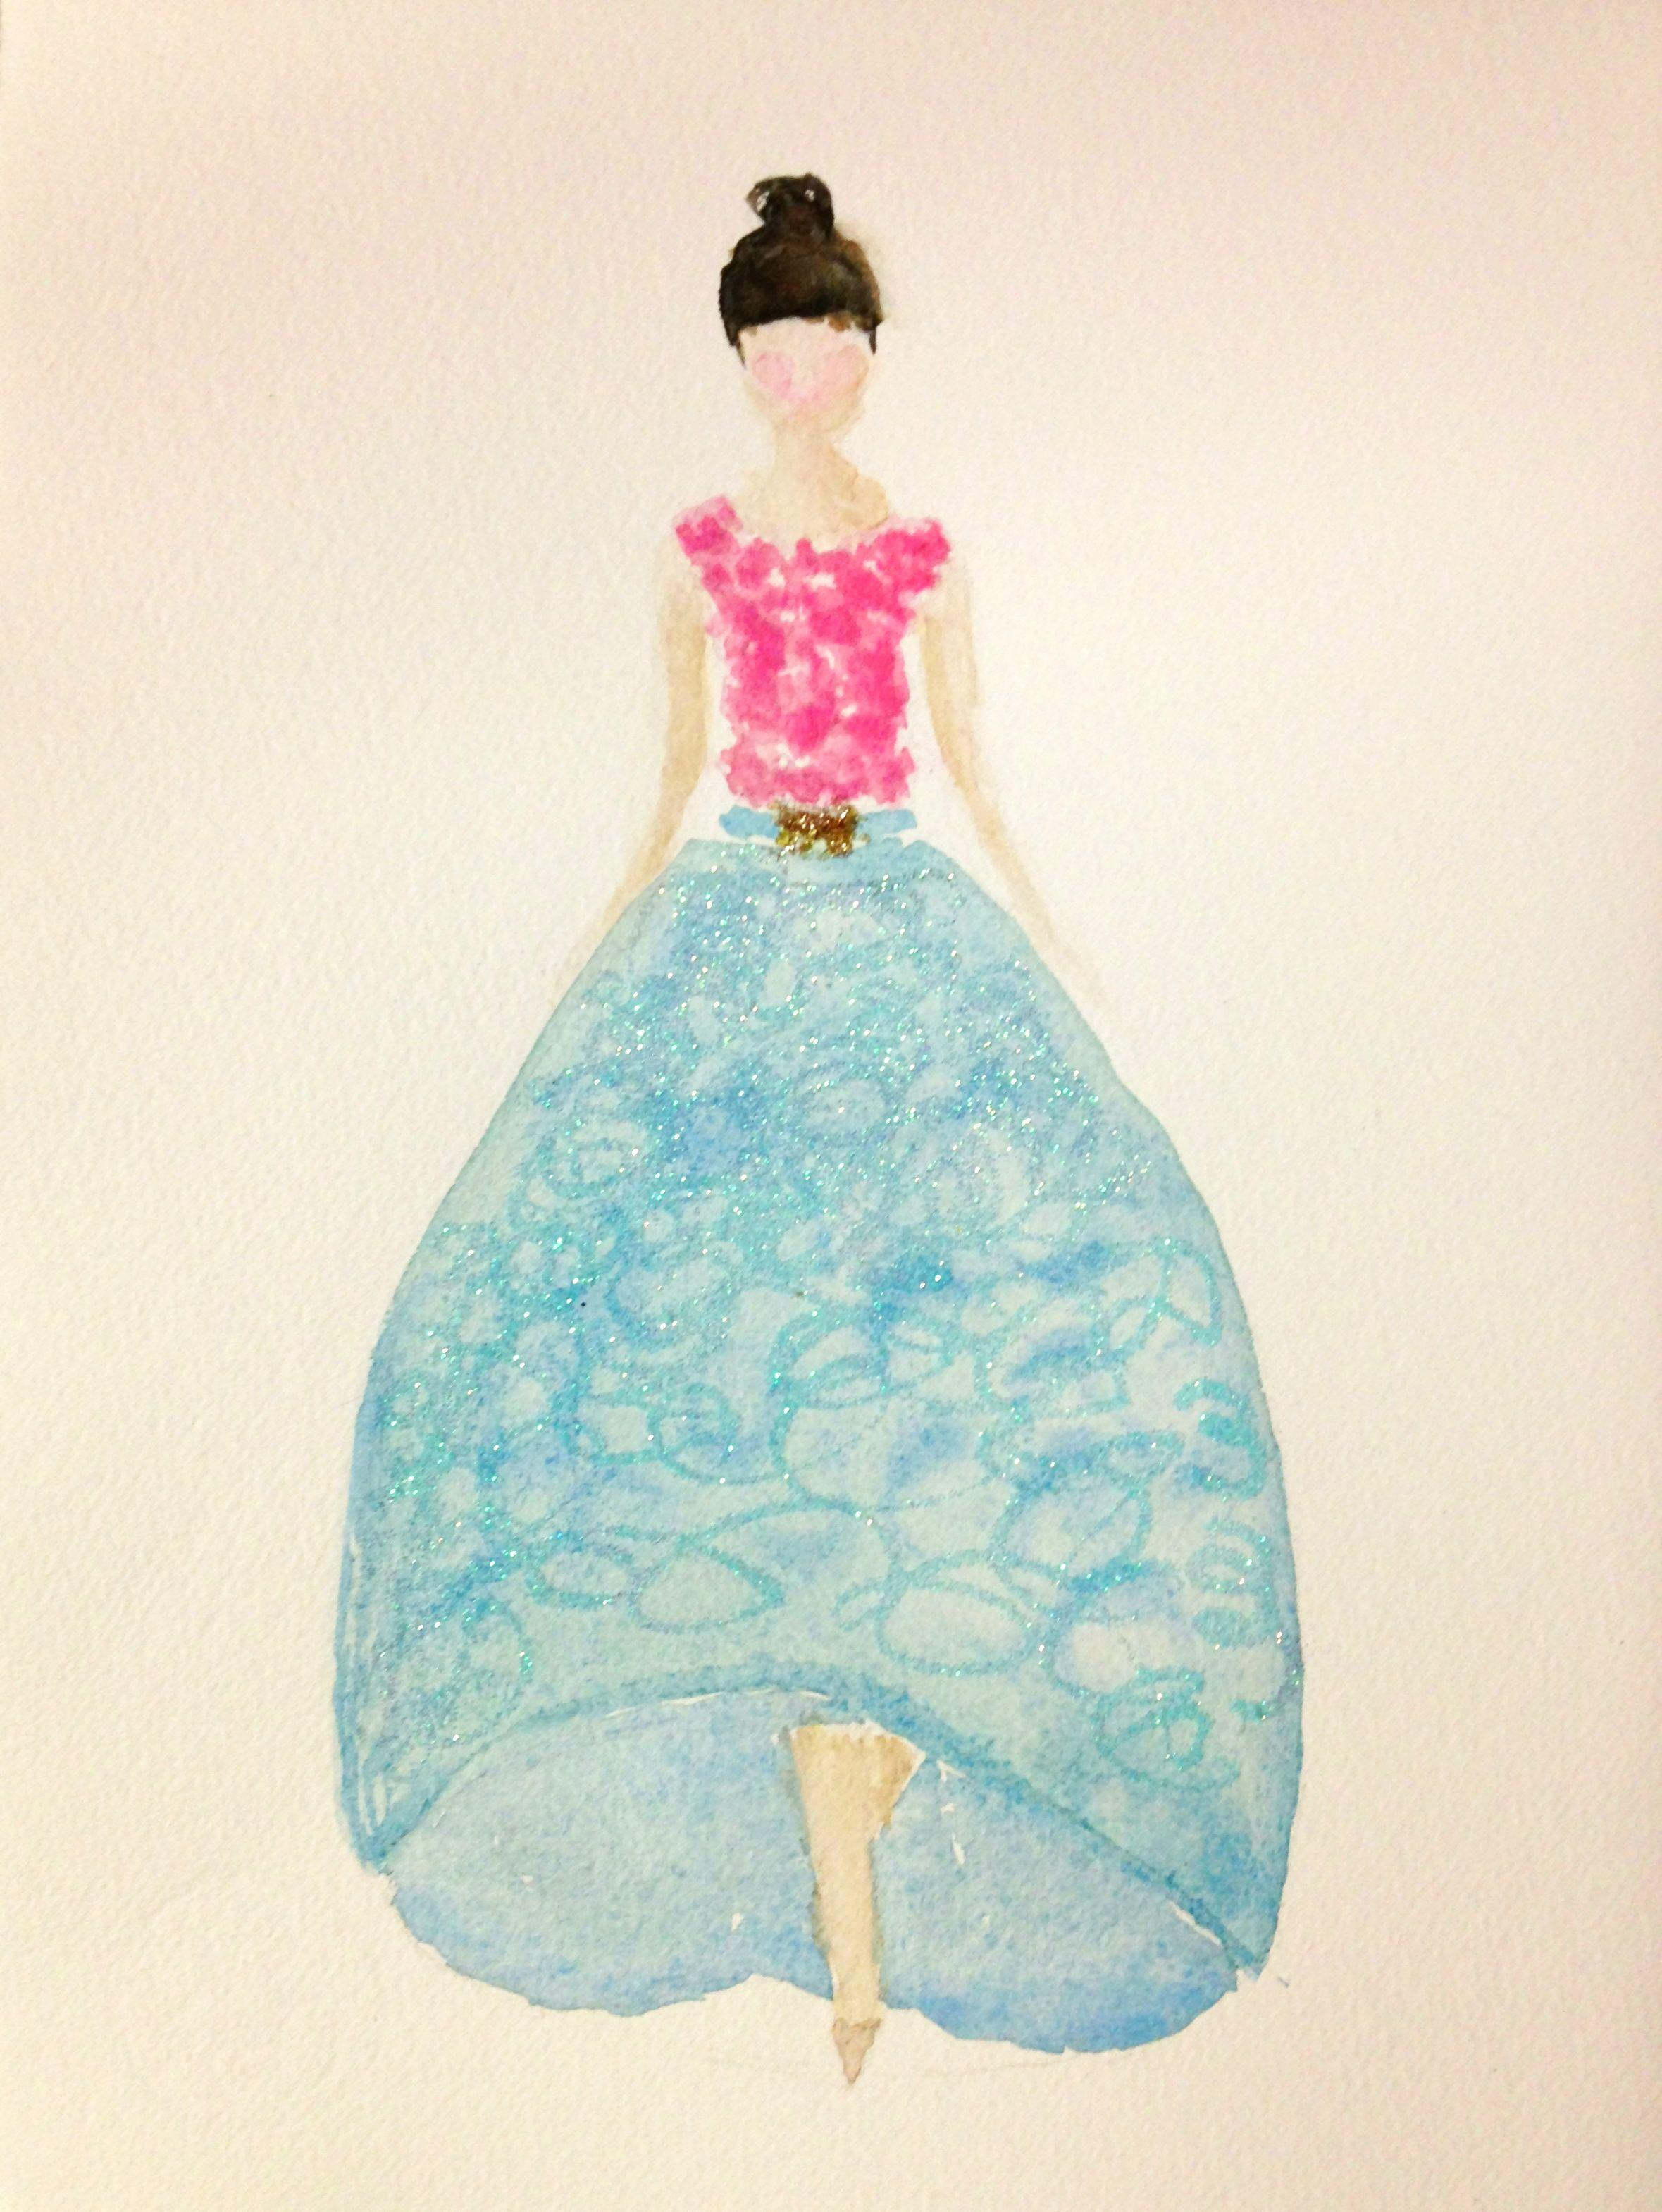 EMBELLISHMENT: My favorite color is shiny - image 1 - student project